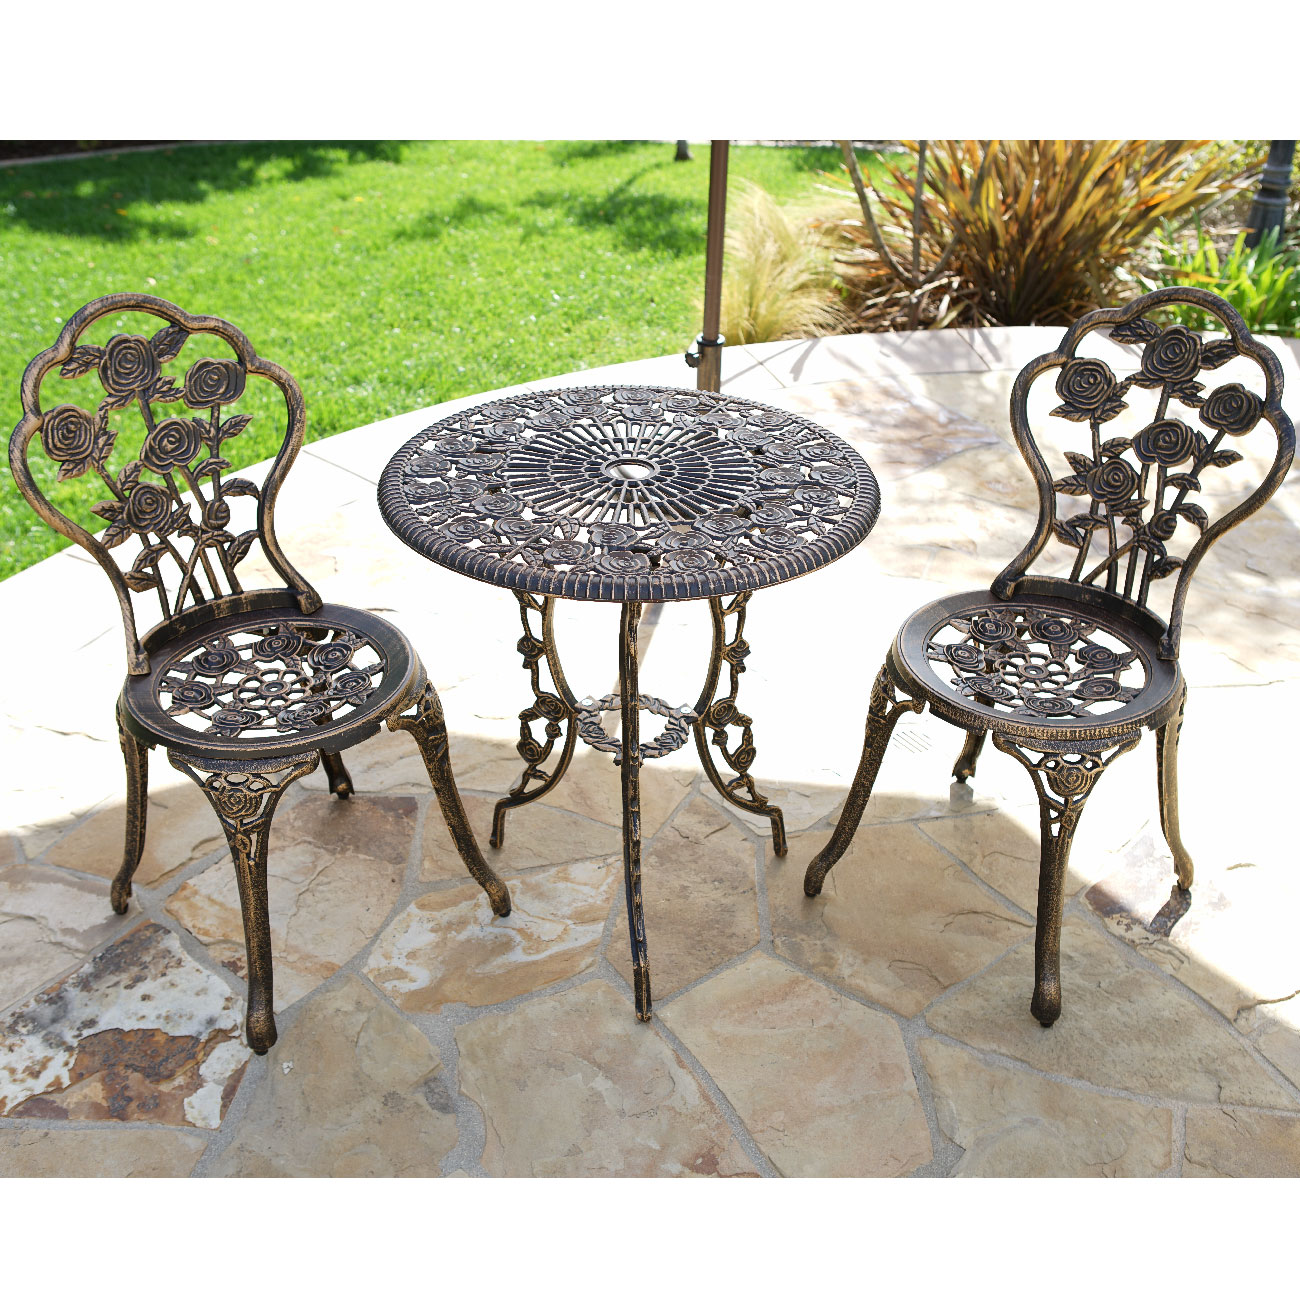 3pcs Outdoor Patio Furniture Cast Aluminum Bistro Set Table Antique Bronze White